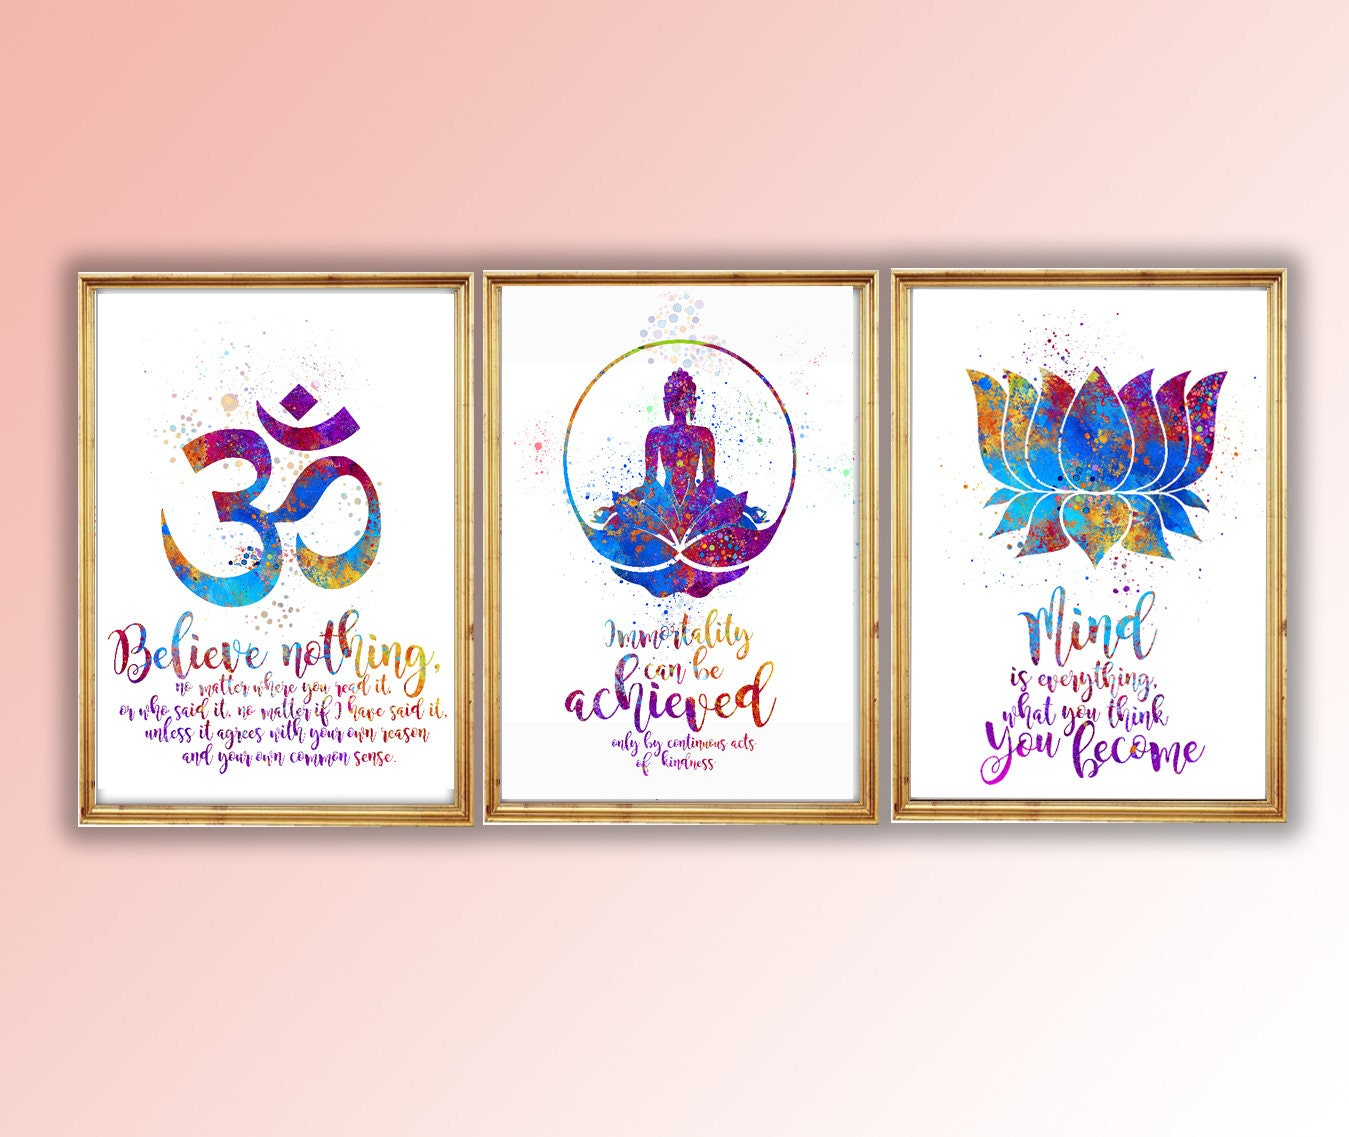 Buddha Symbols And Quotes Aum Ombuddha And Lotus Flower Etsy